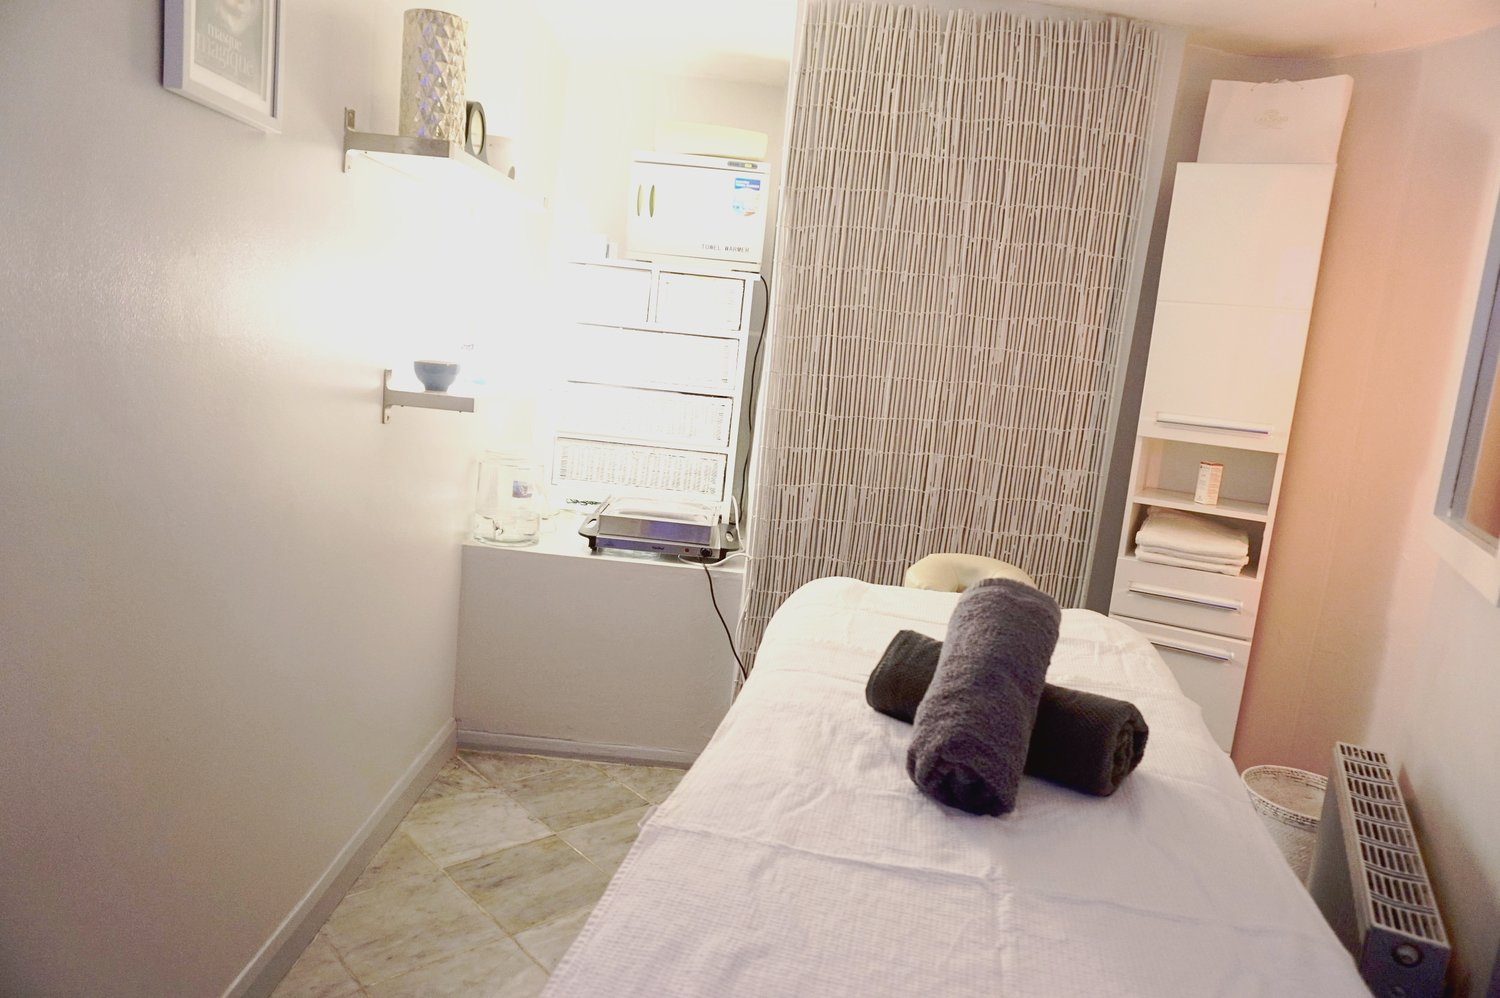 Massage Therapy at Belle Vous Spa, relaxing healing, calming treatment,  stress - Belle Vous Spa & Salon - Crystal Palace